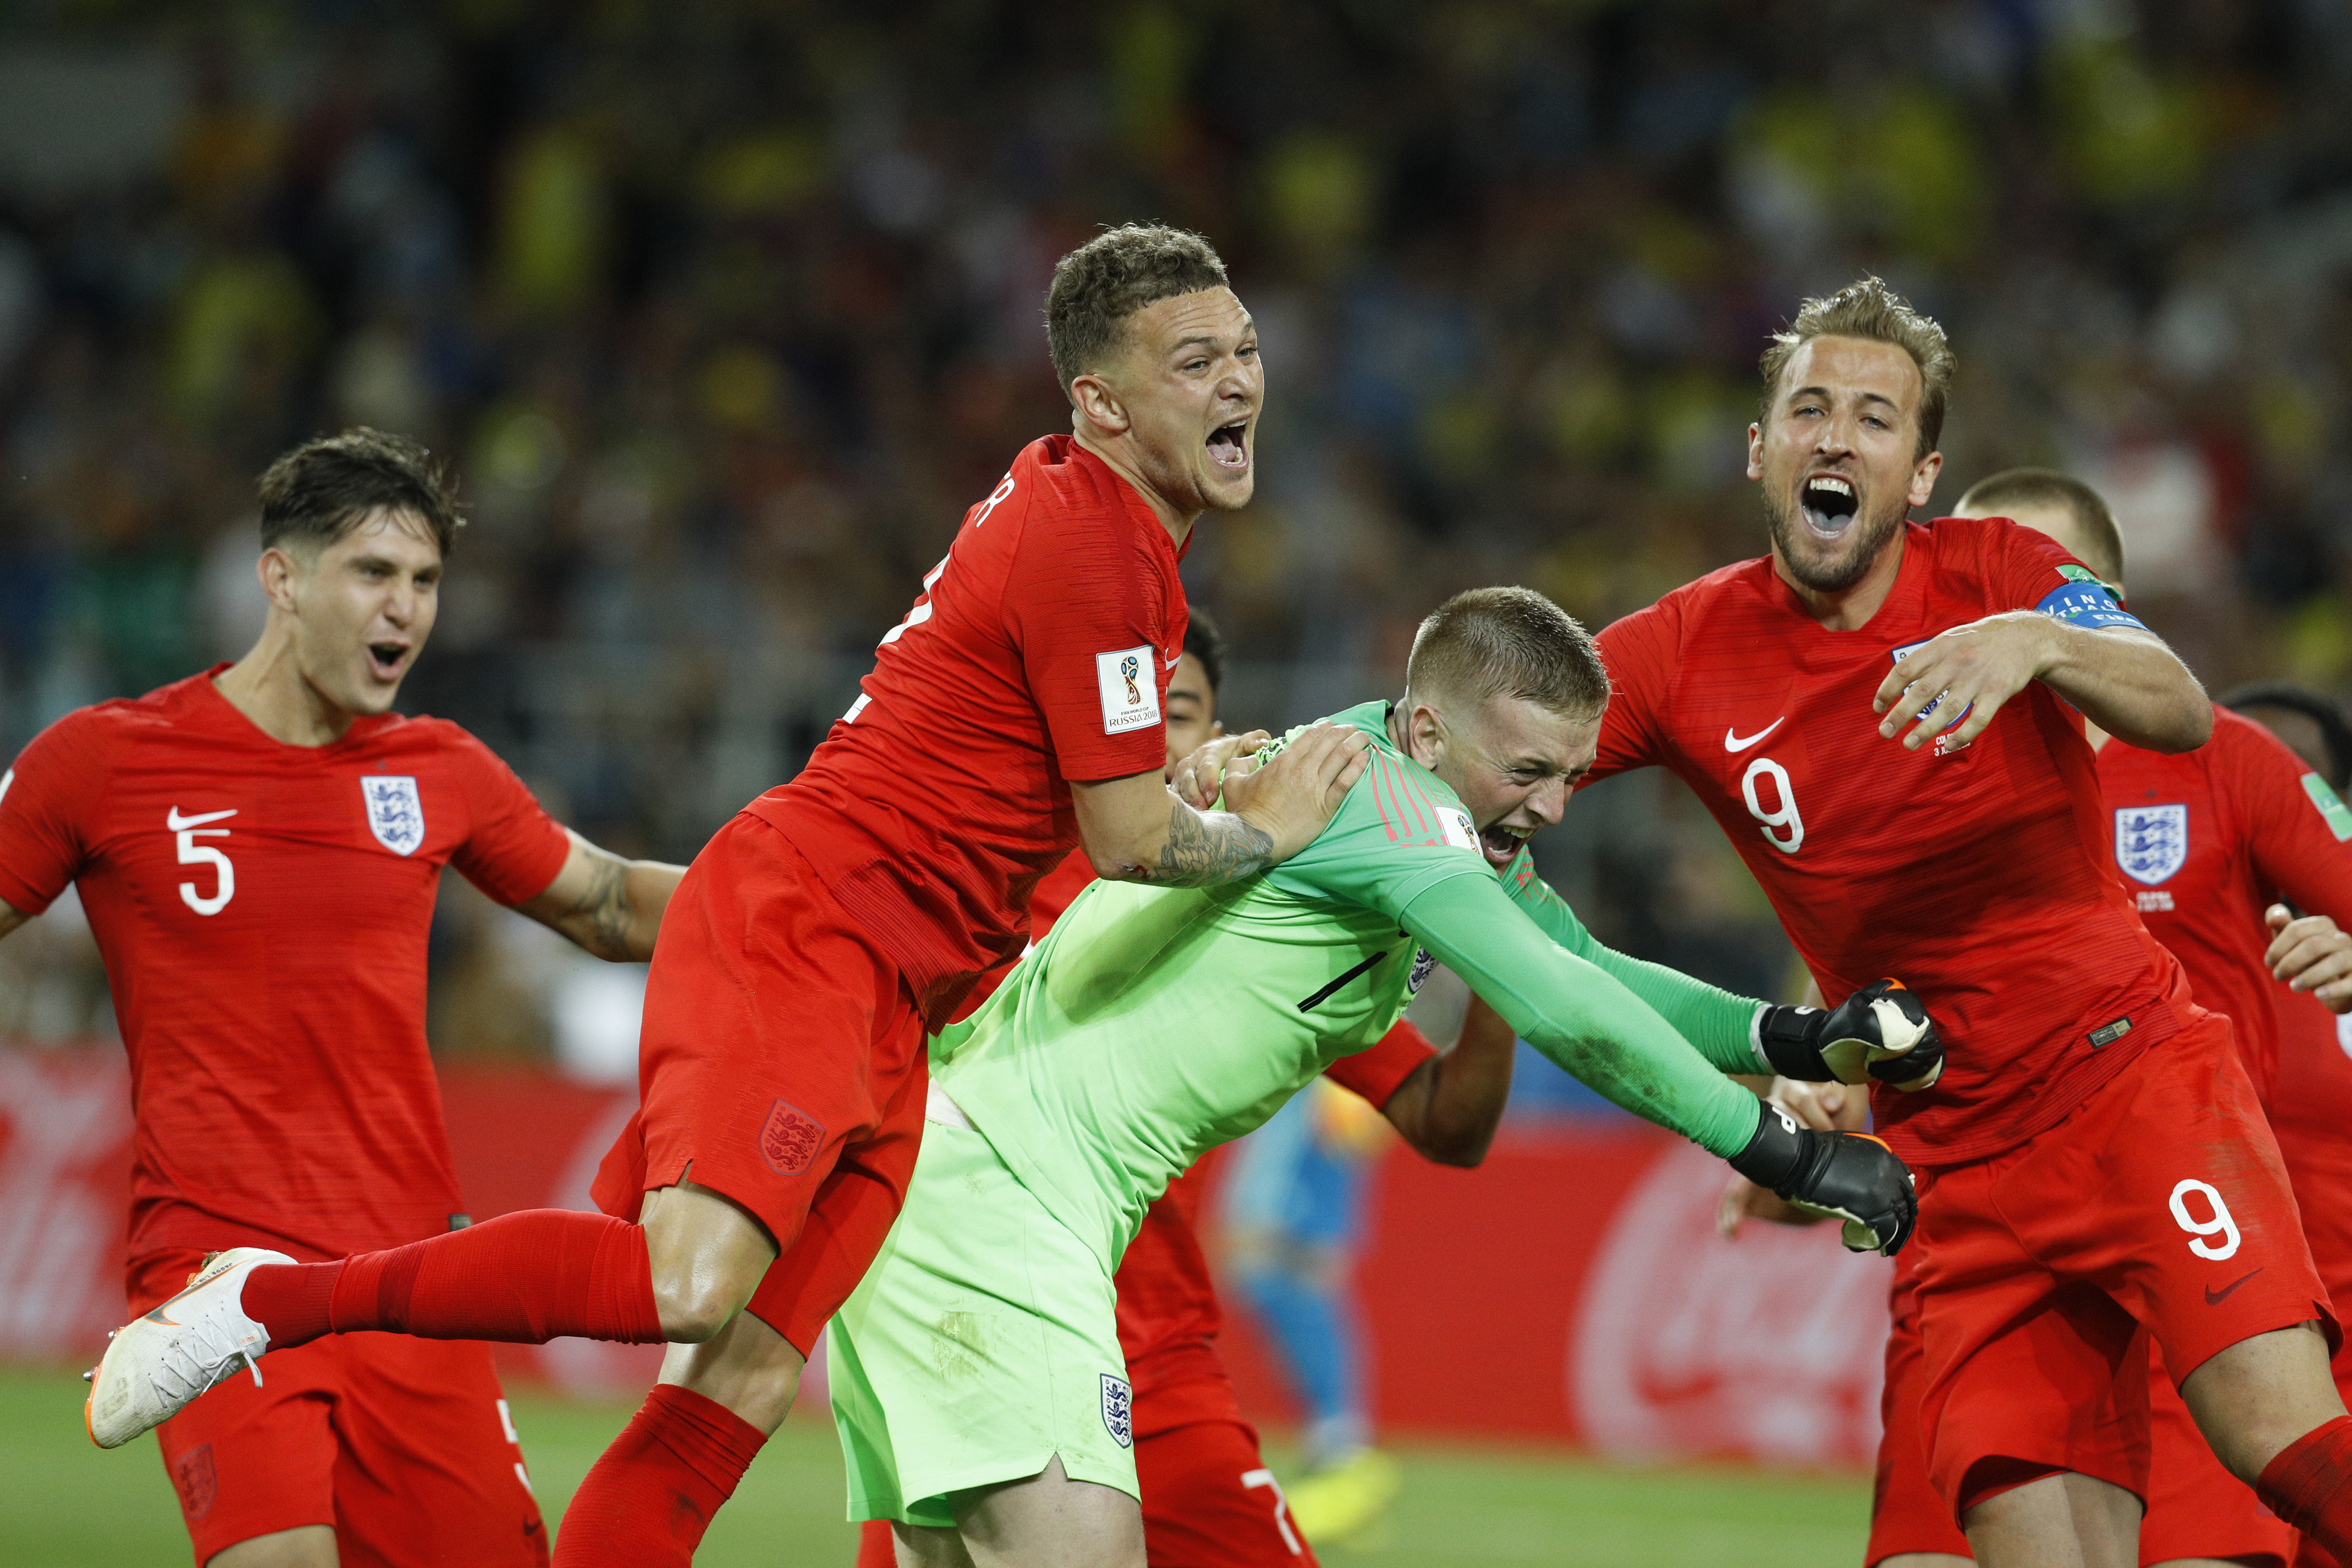 John Stones Reacted Hilariously To Rip The Colombia Players After England Won